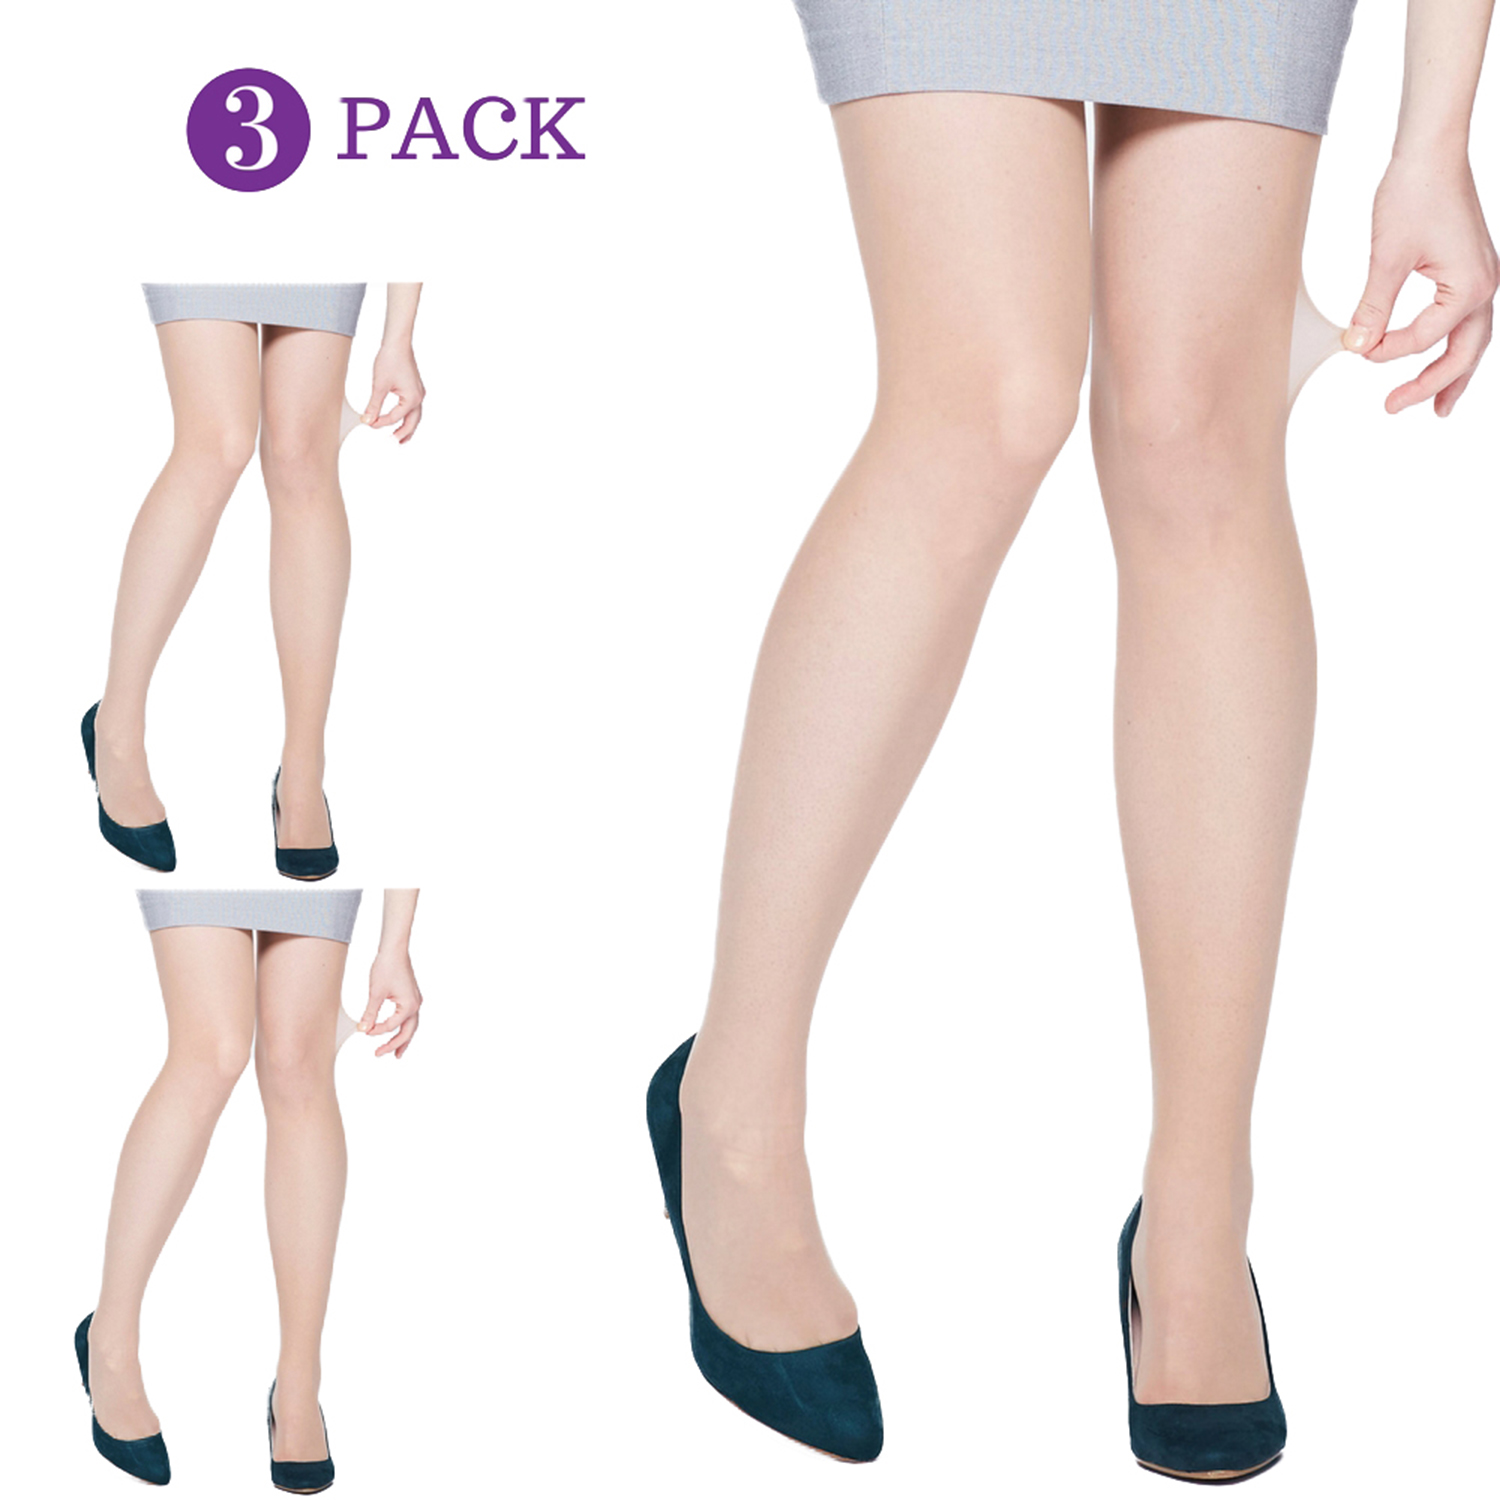 Nude 3 PACK 15 Denier Tights   Long Tall Sally